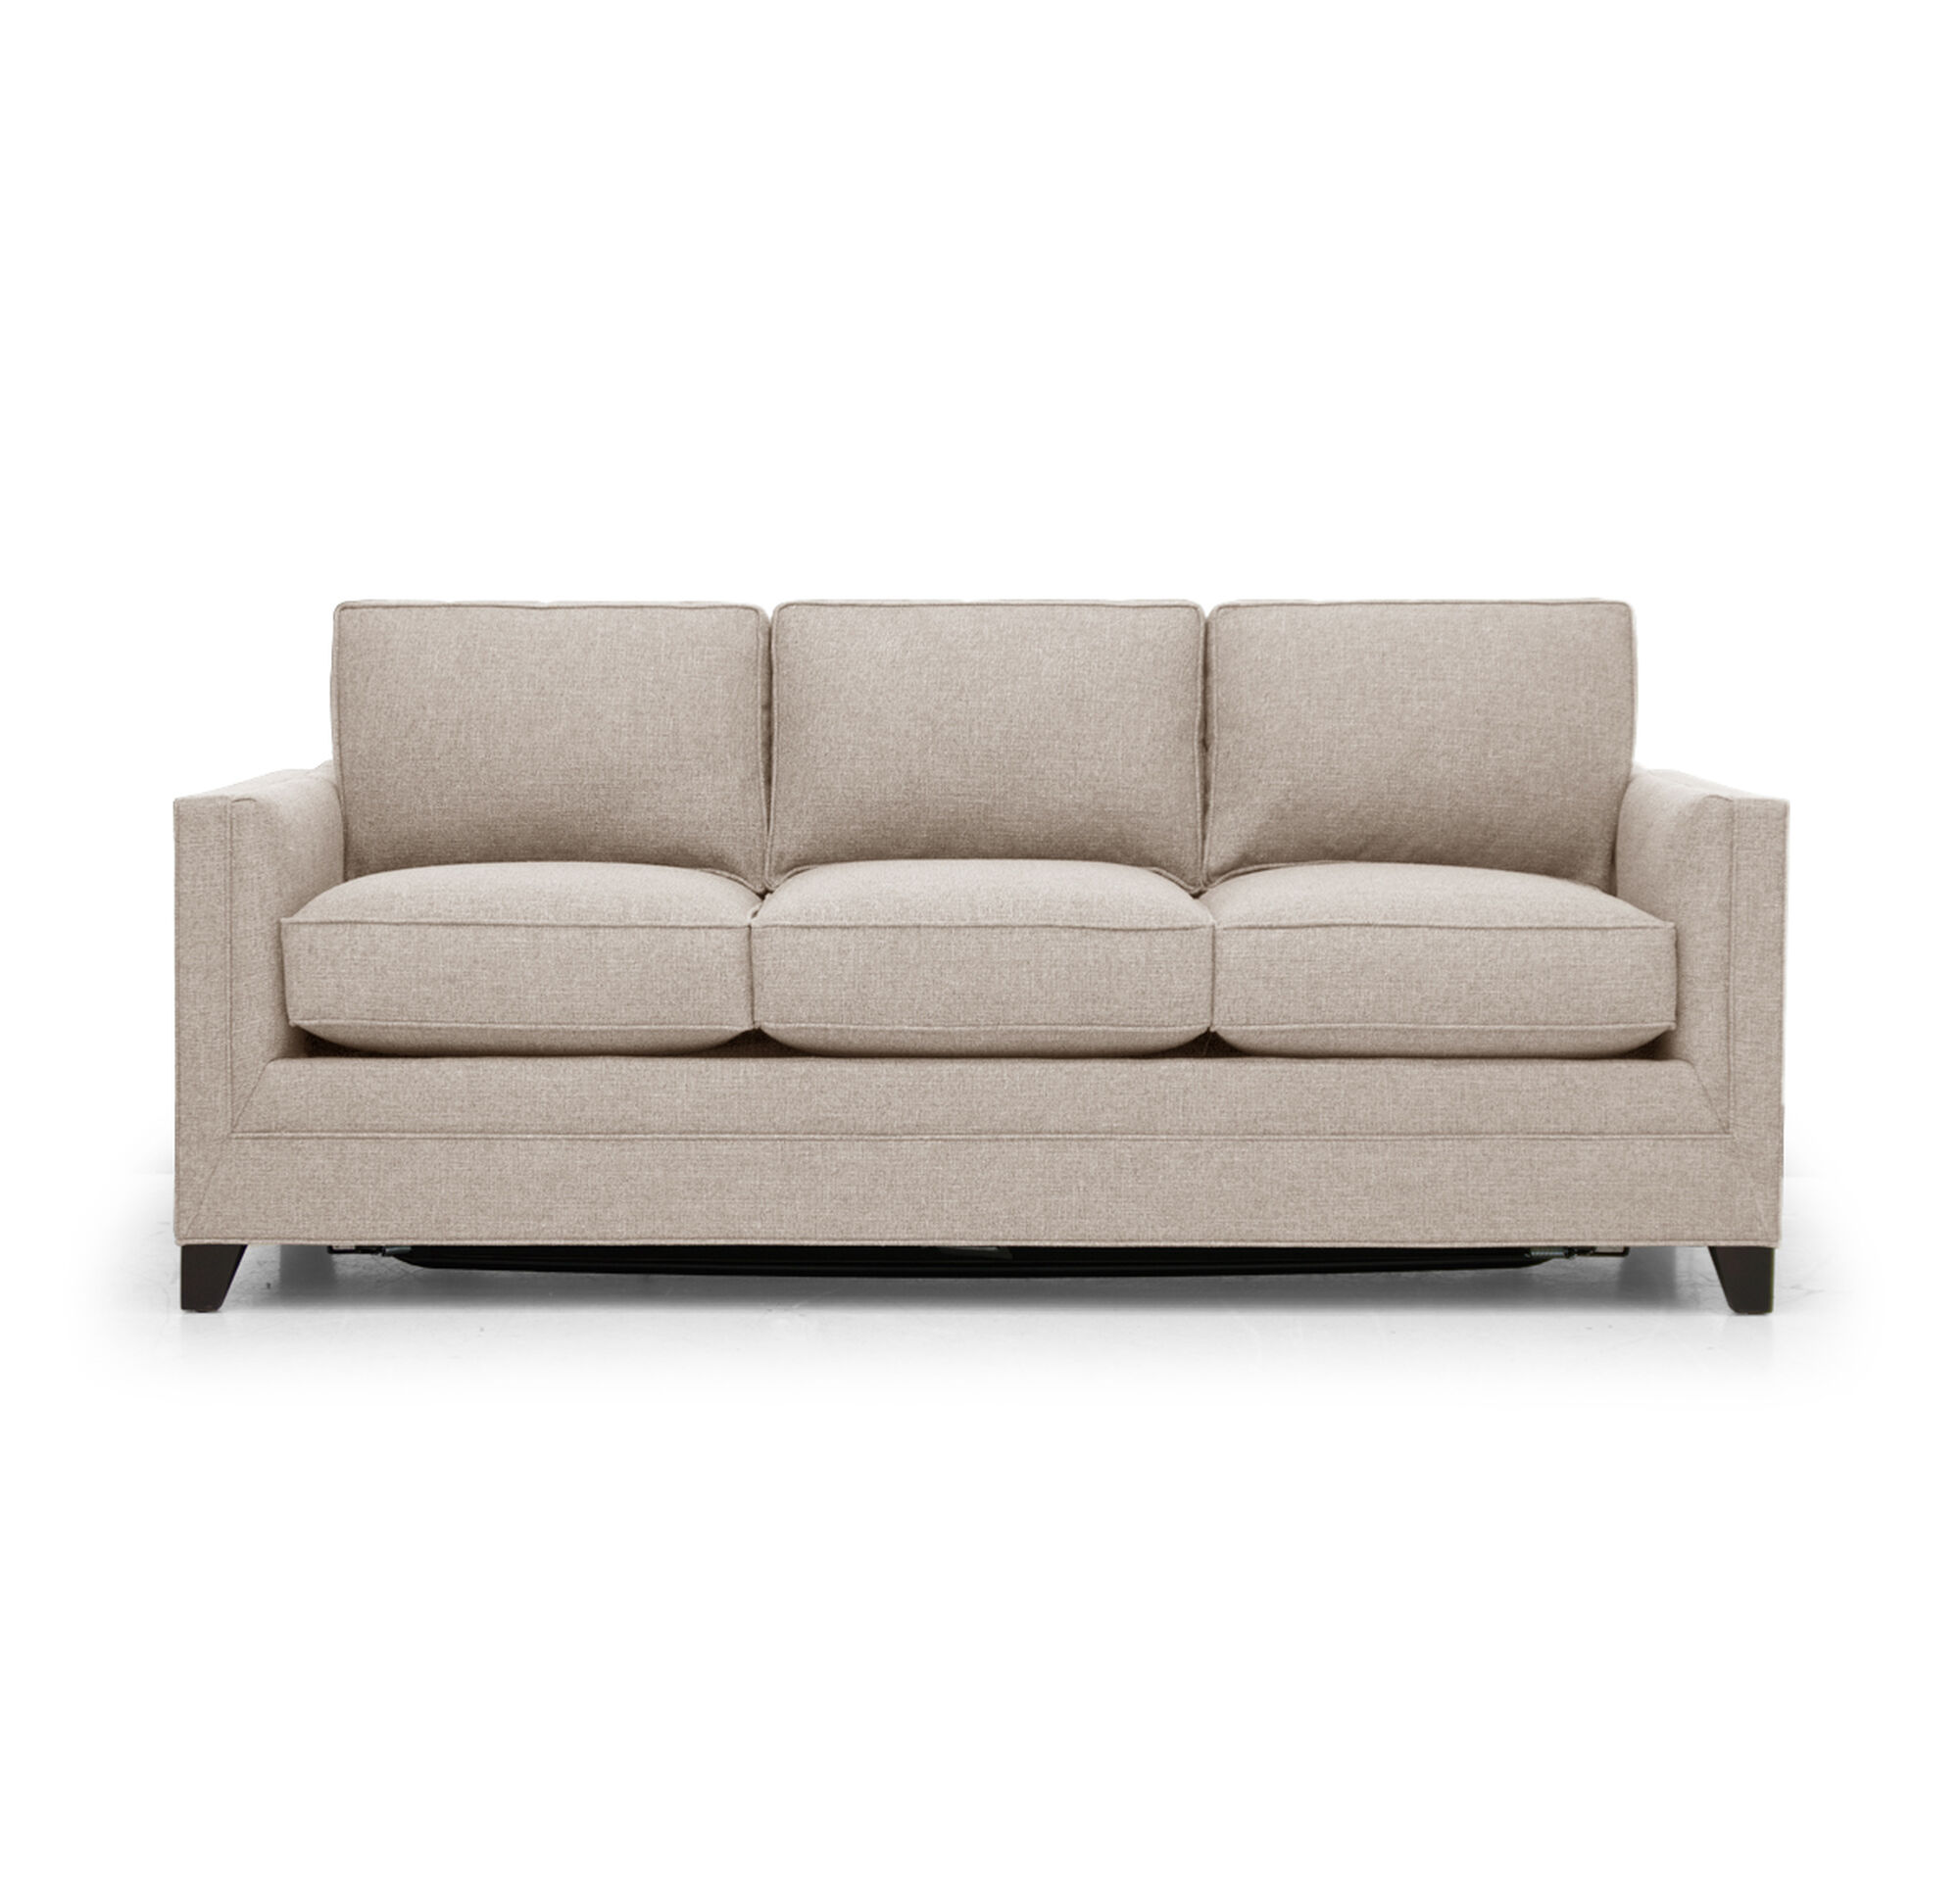 REESE SUPER LUXE QUEEN SLEEPER SOFA : Reese877 002T103737Herod from www.mgbwhome.com size 2000 x 1933 jpeg 221kB